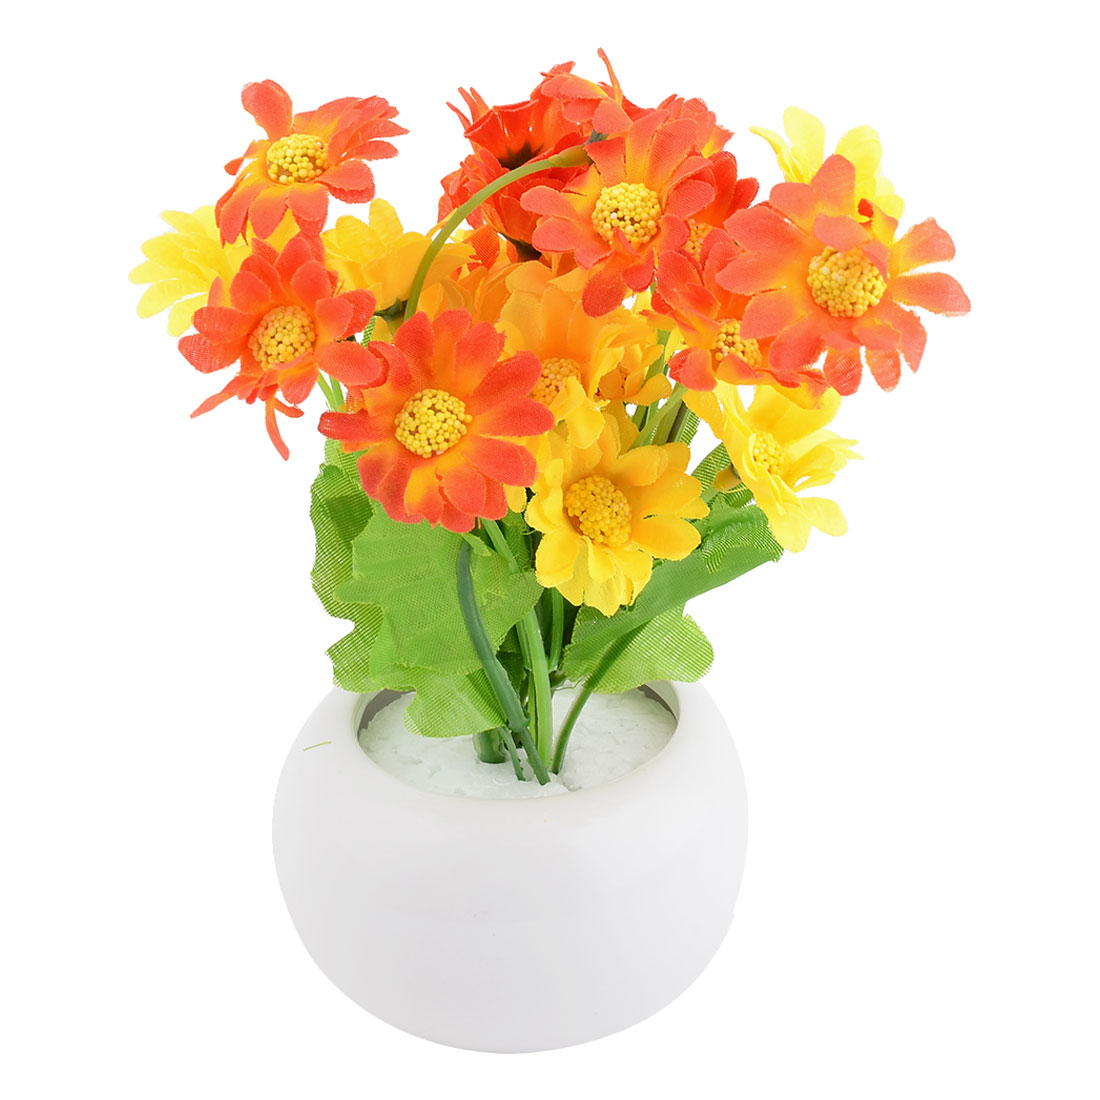 Family Office Ceramic Flowerpot Desk Ornament Artificial Emulational Flower Orange Yellow